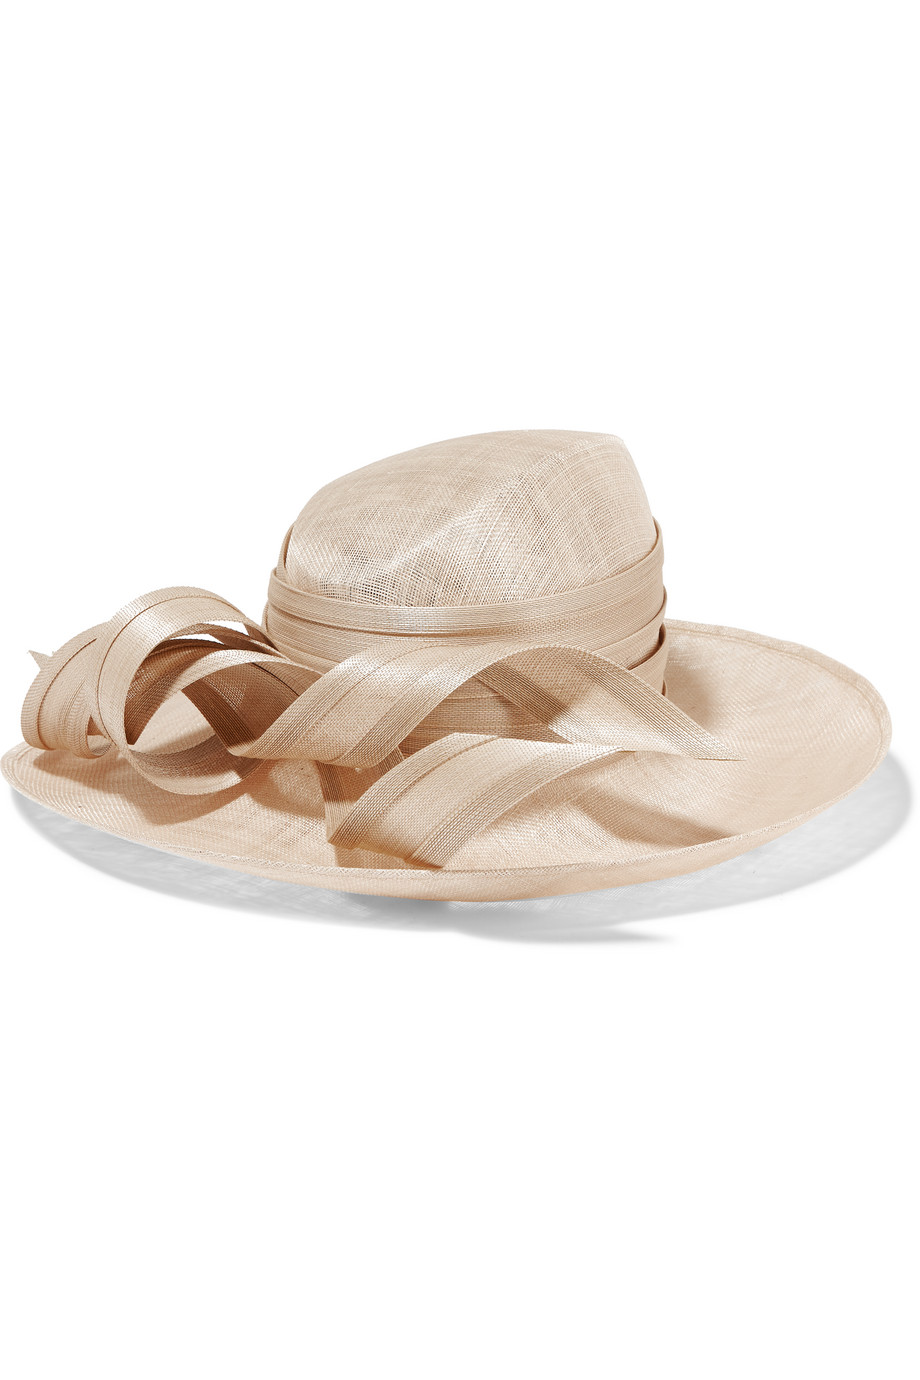 Philip Treacy Wide-Brim Buntal Straw Hat, Blush, Women's